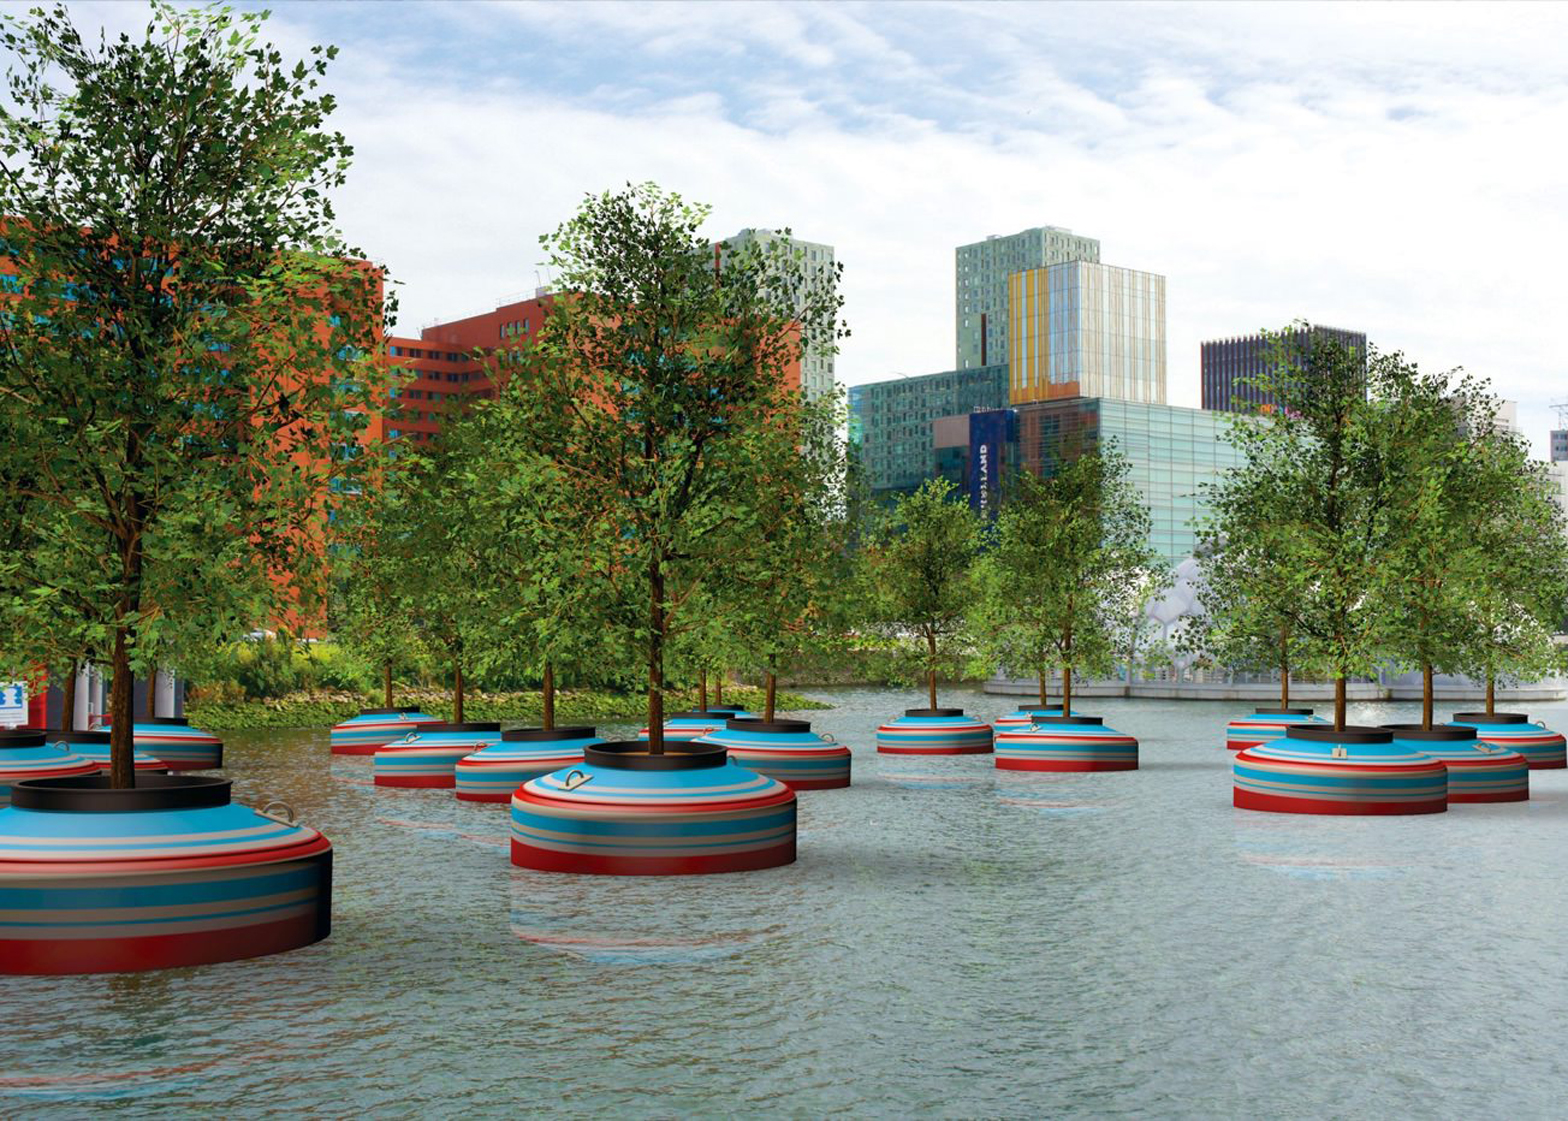 Jorge Bakker is trialling a prototype for a floating forest at RDM Rotterdam